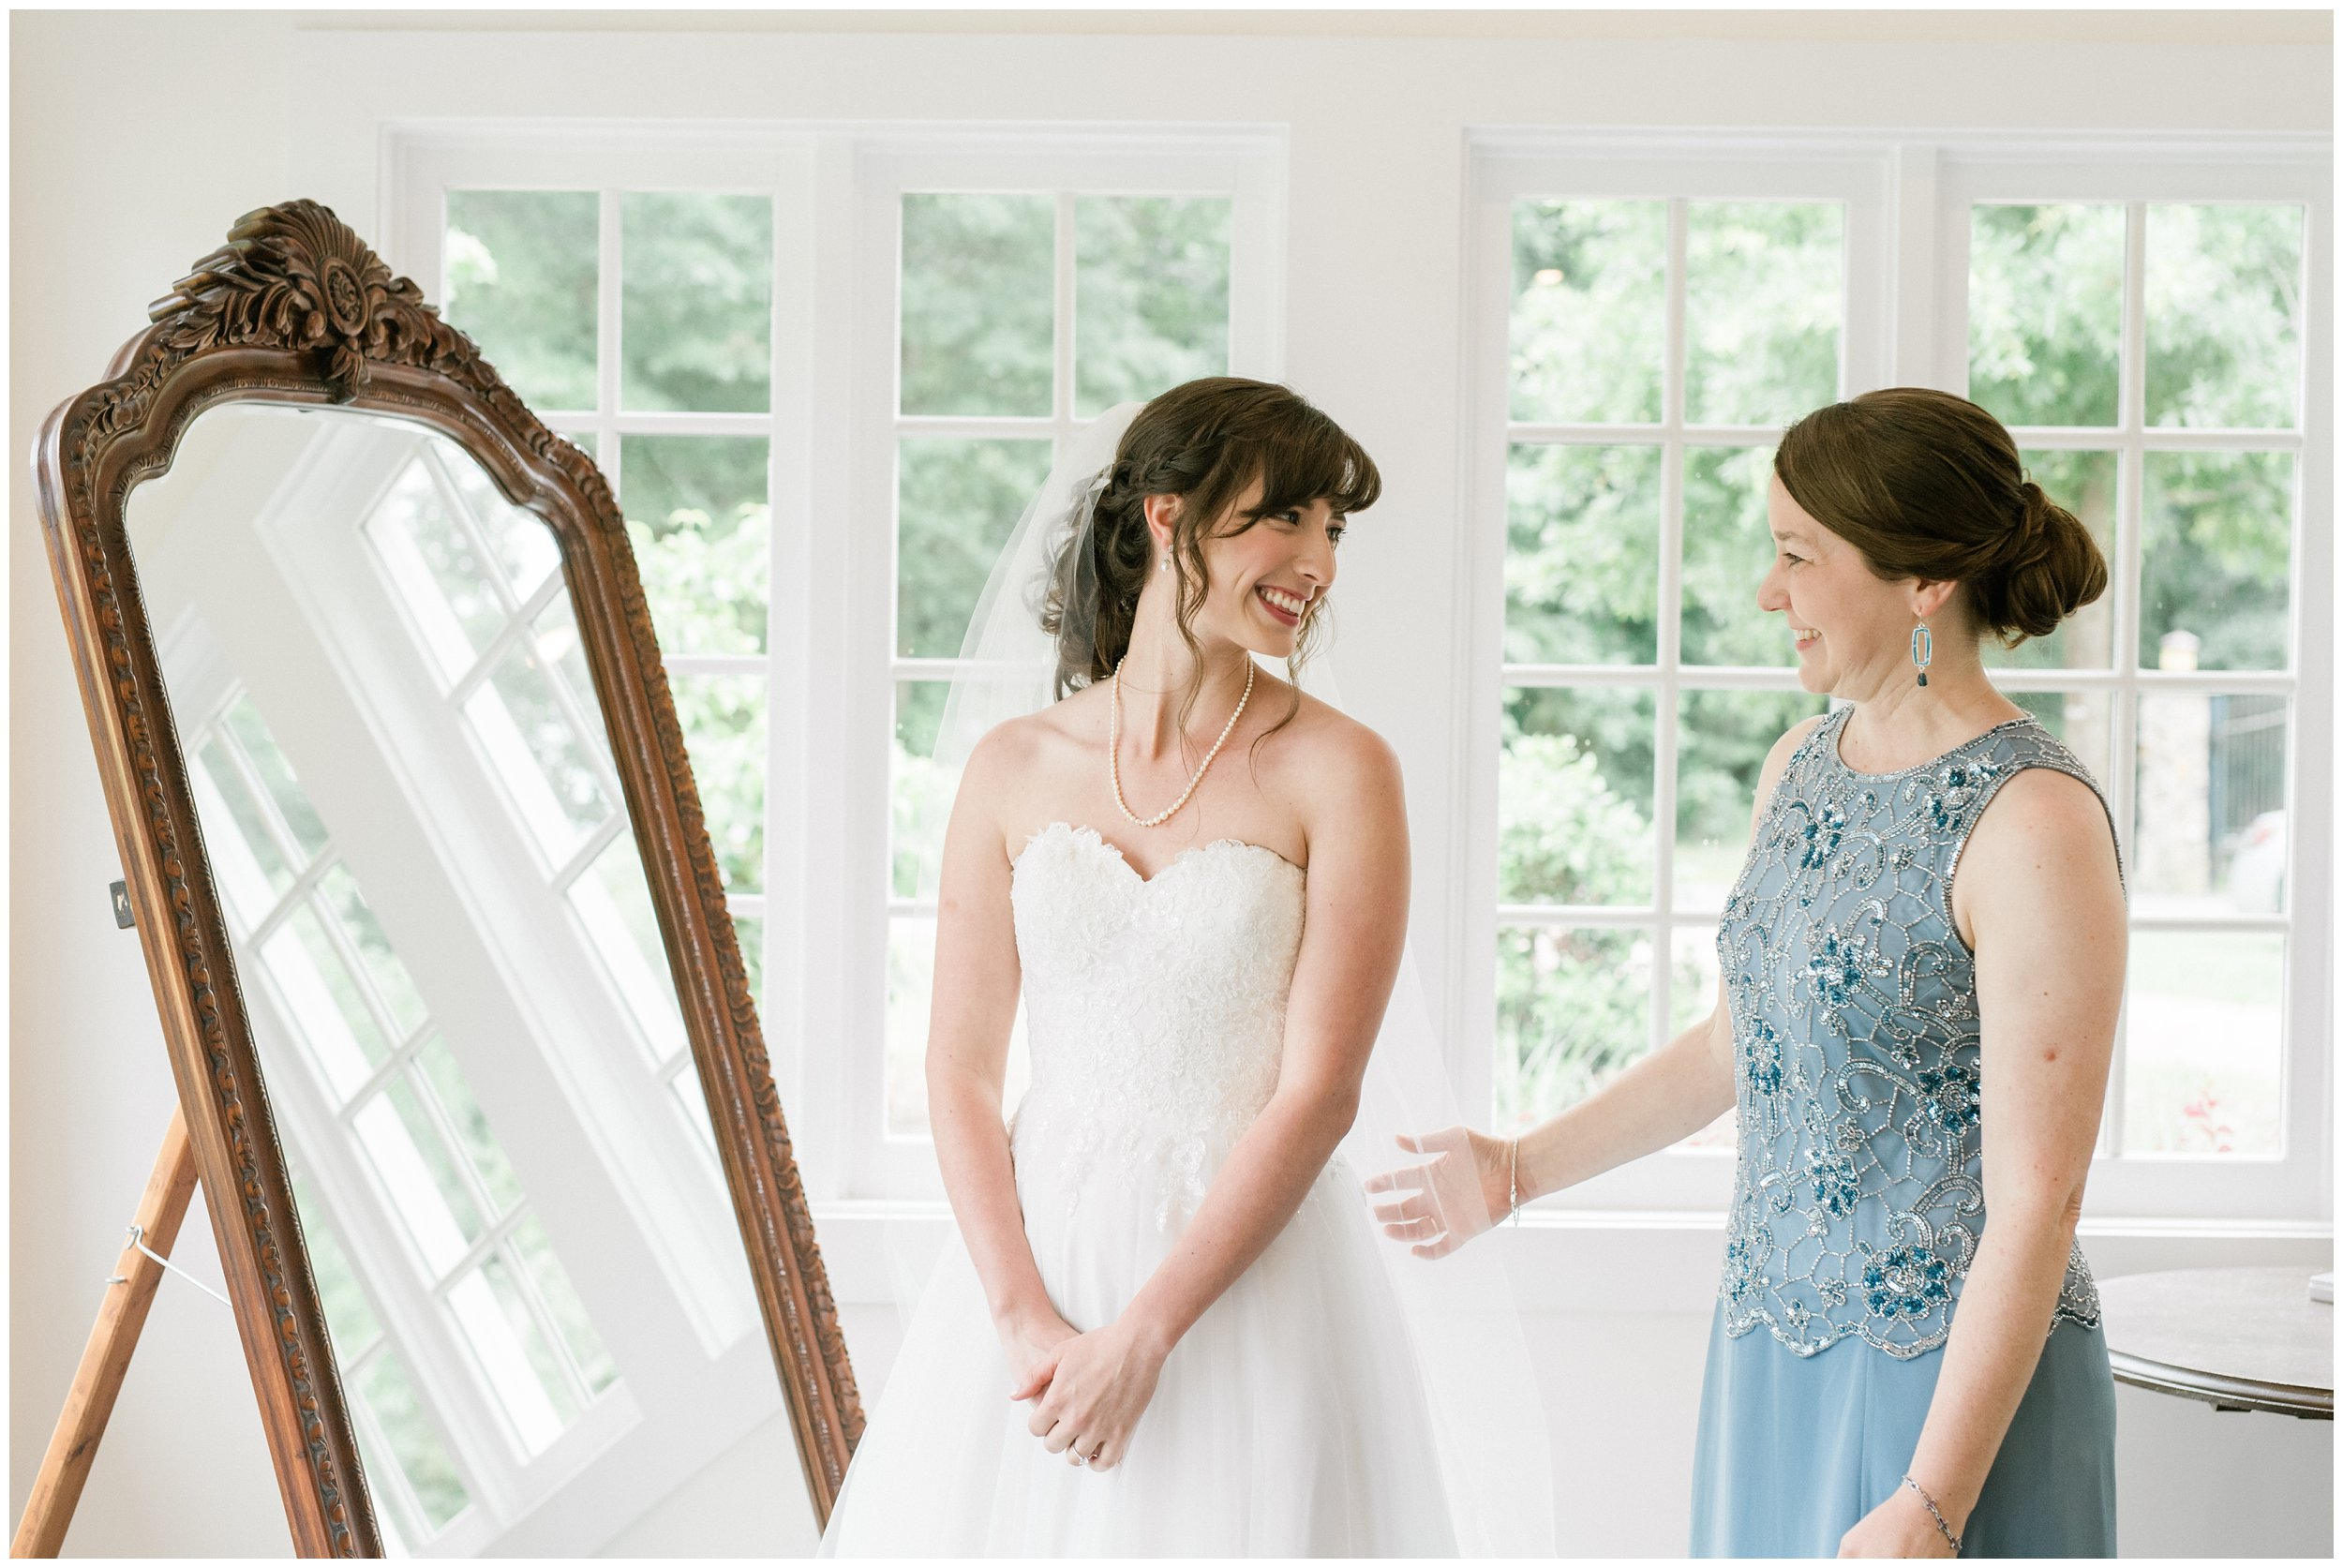 mother in law seeing bride for the first time